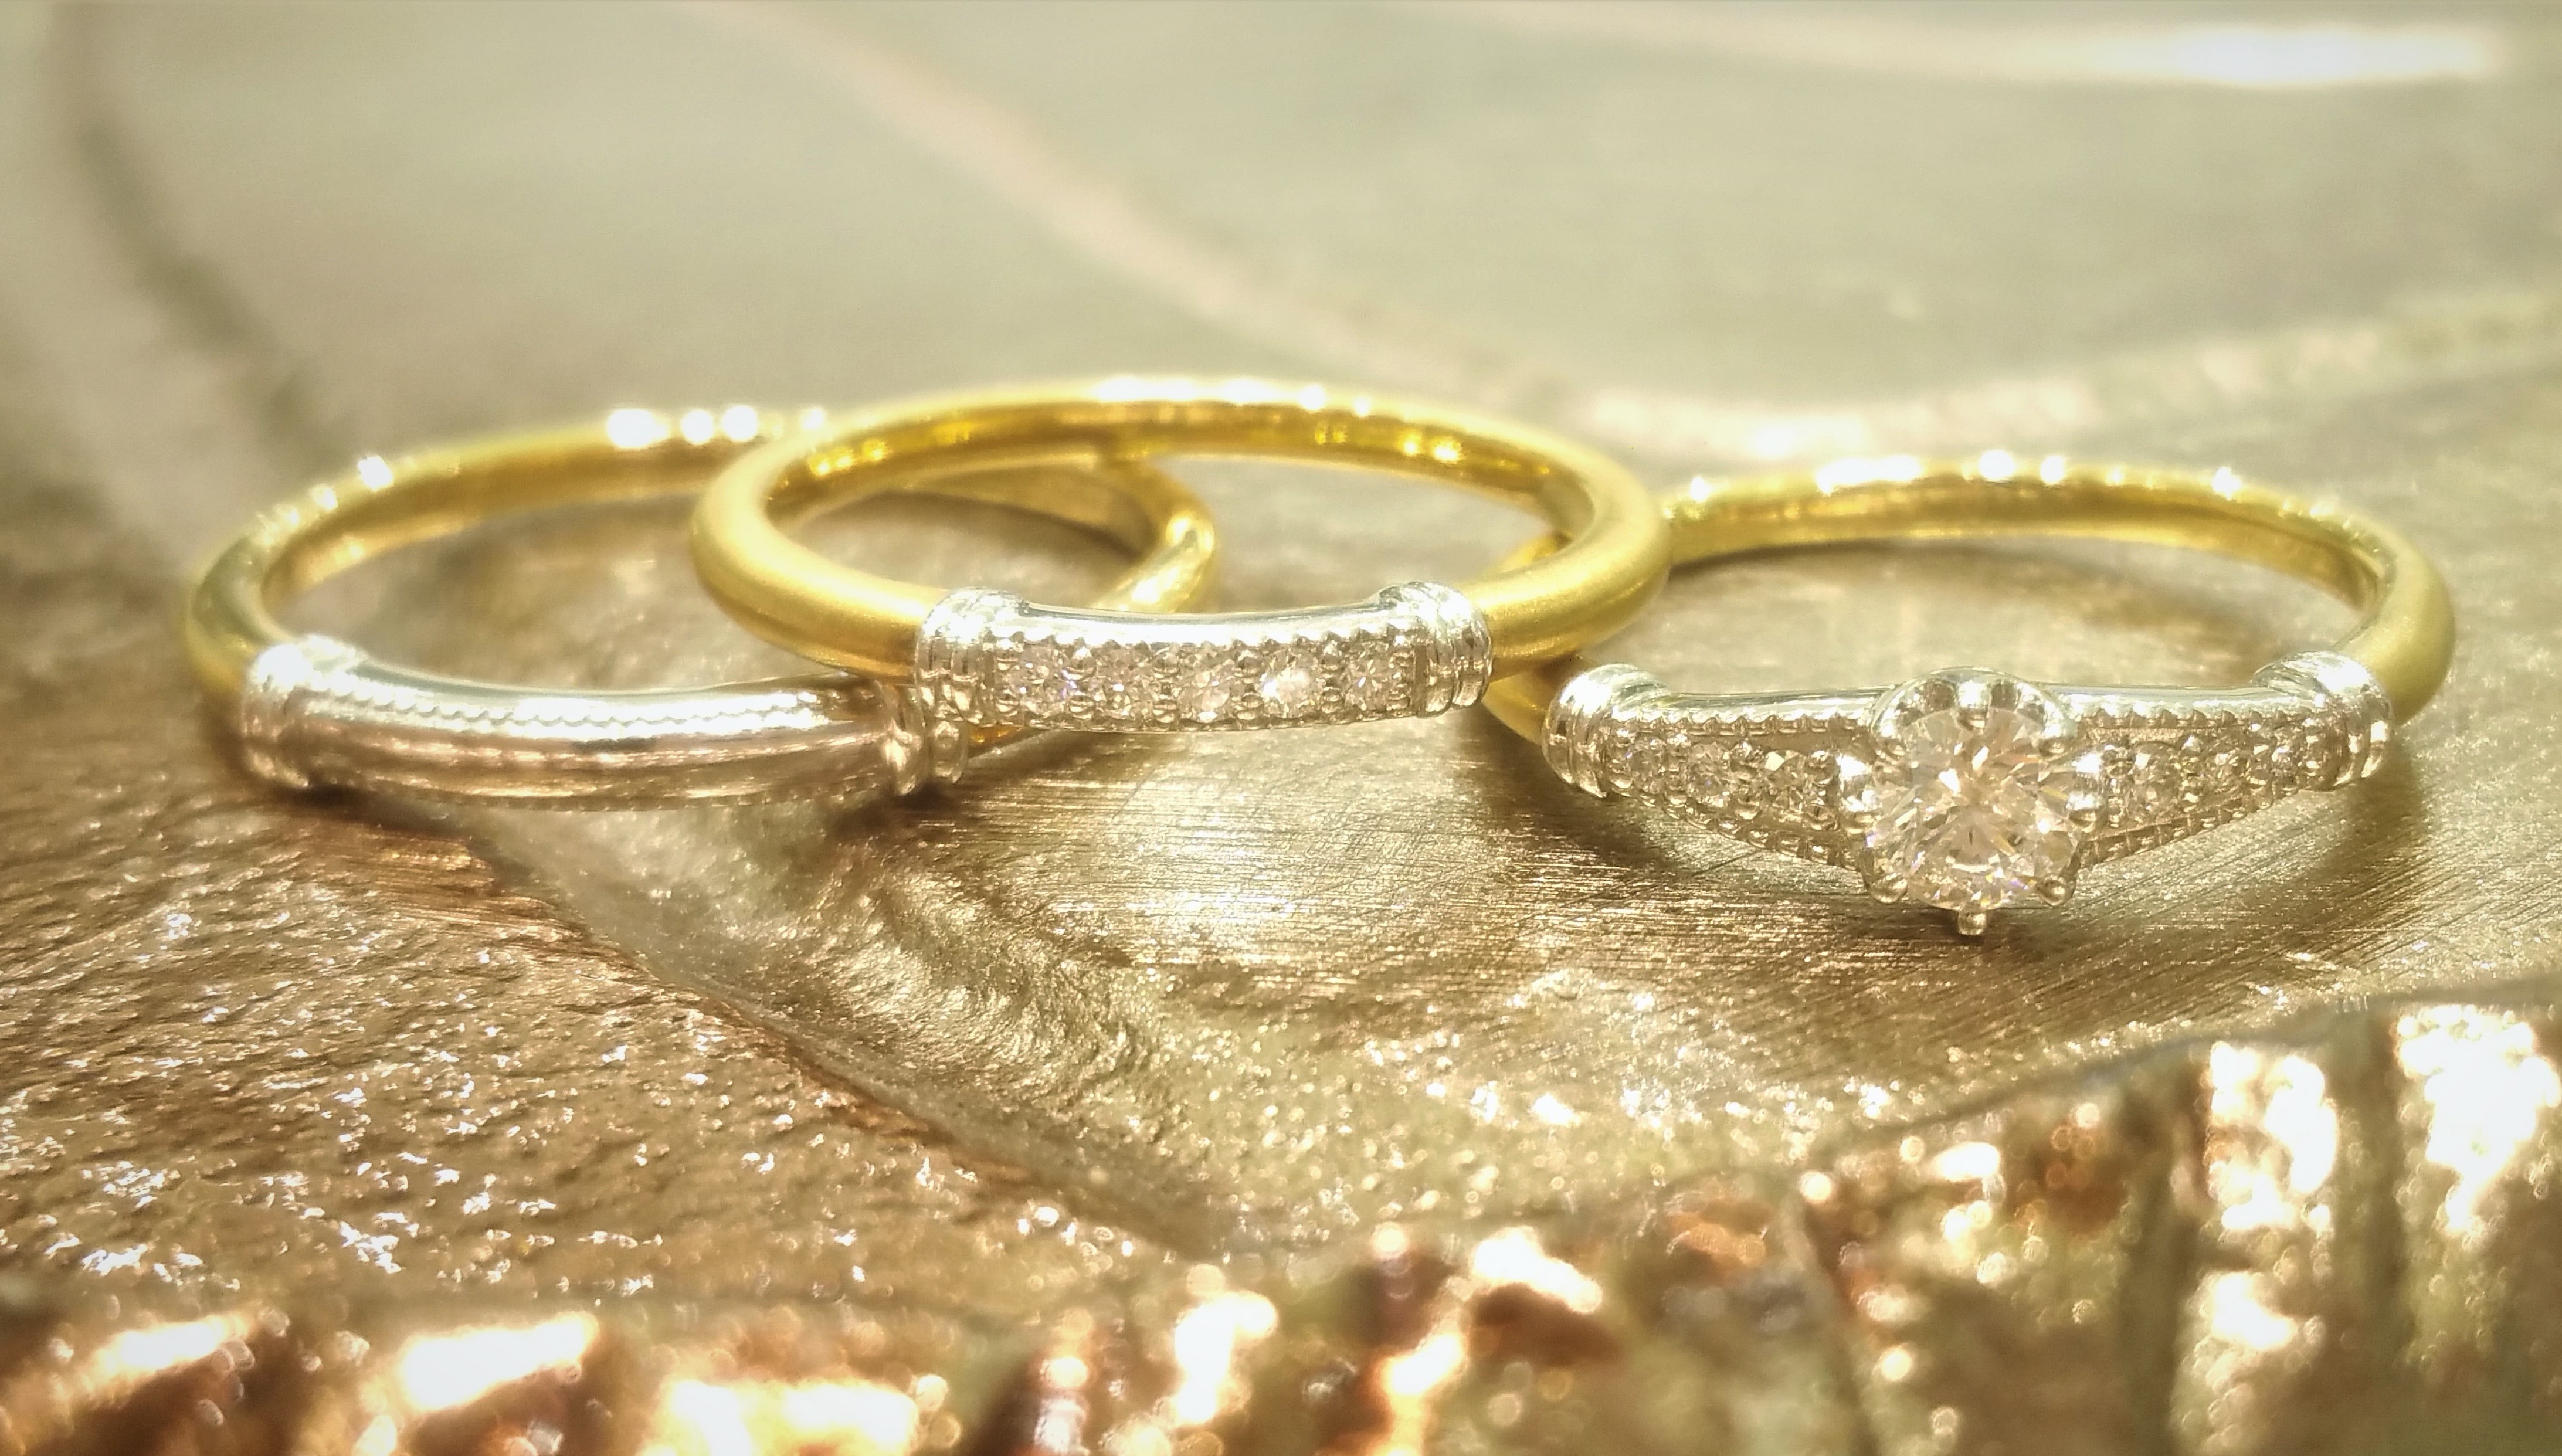 Rustic Gold Rings - VENUS TEARS - Wedding Bands / Engagement Ring